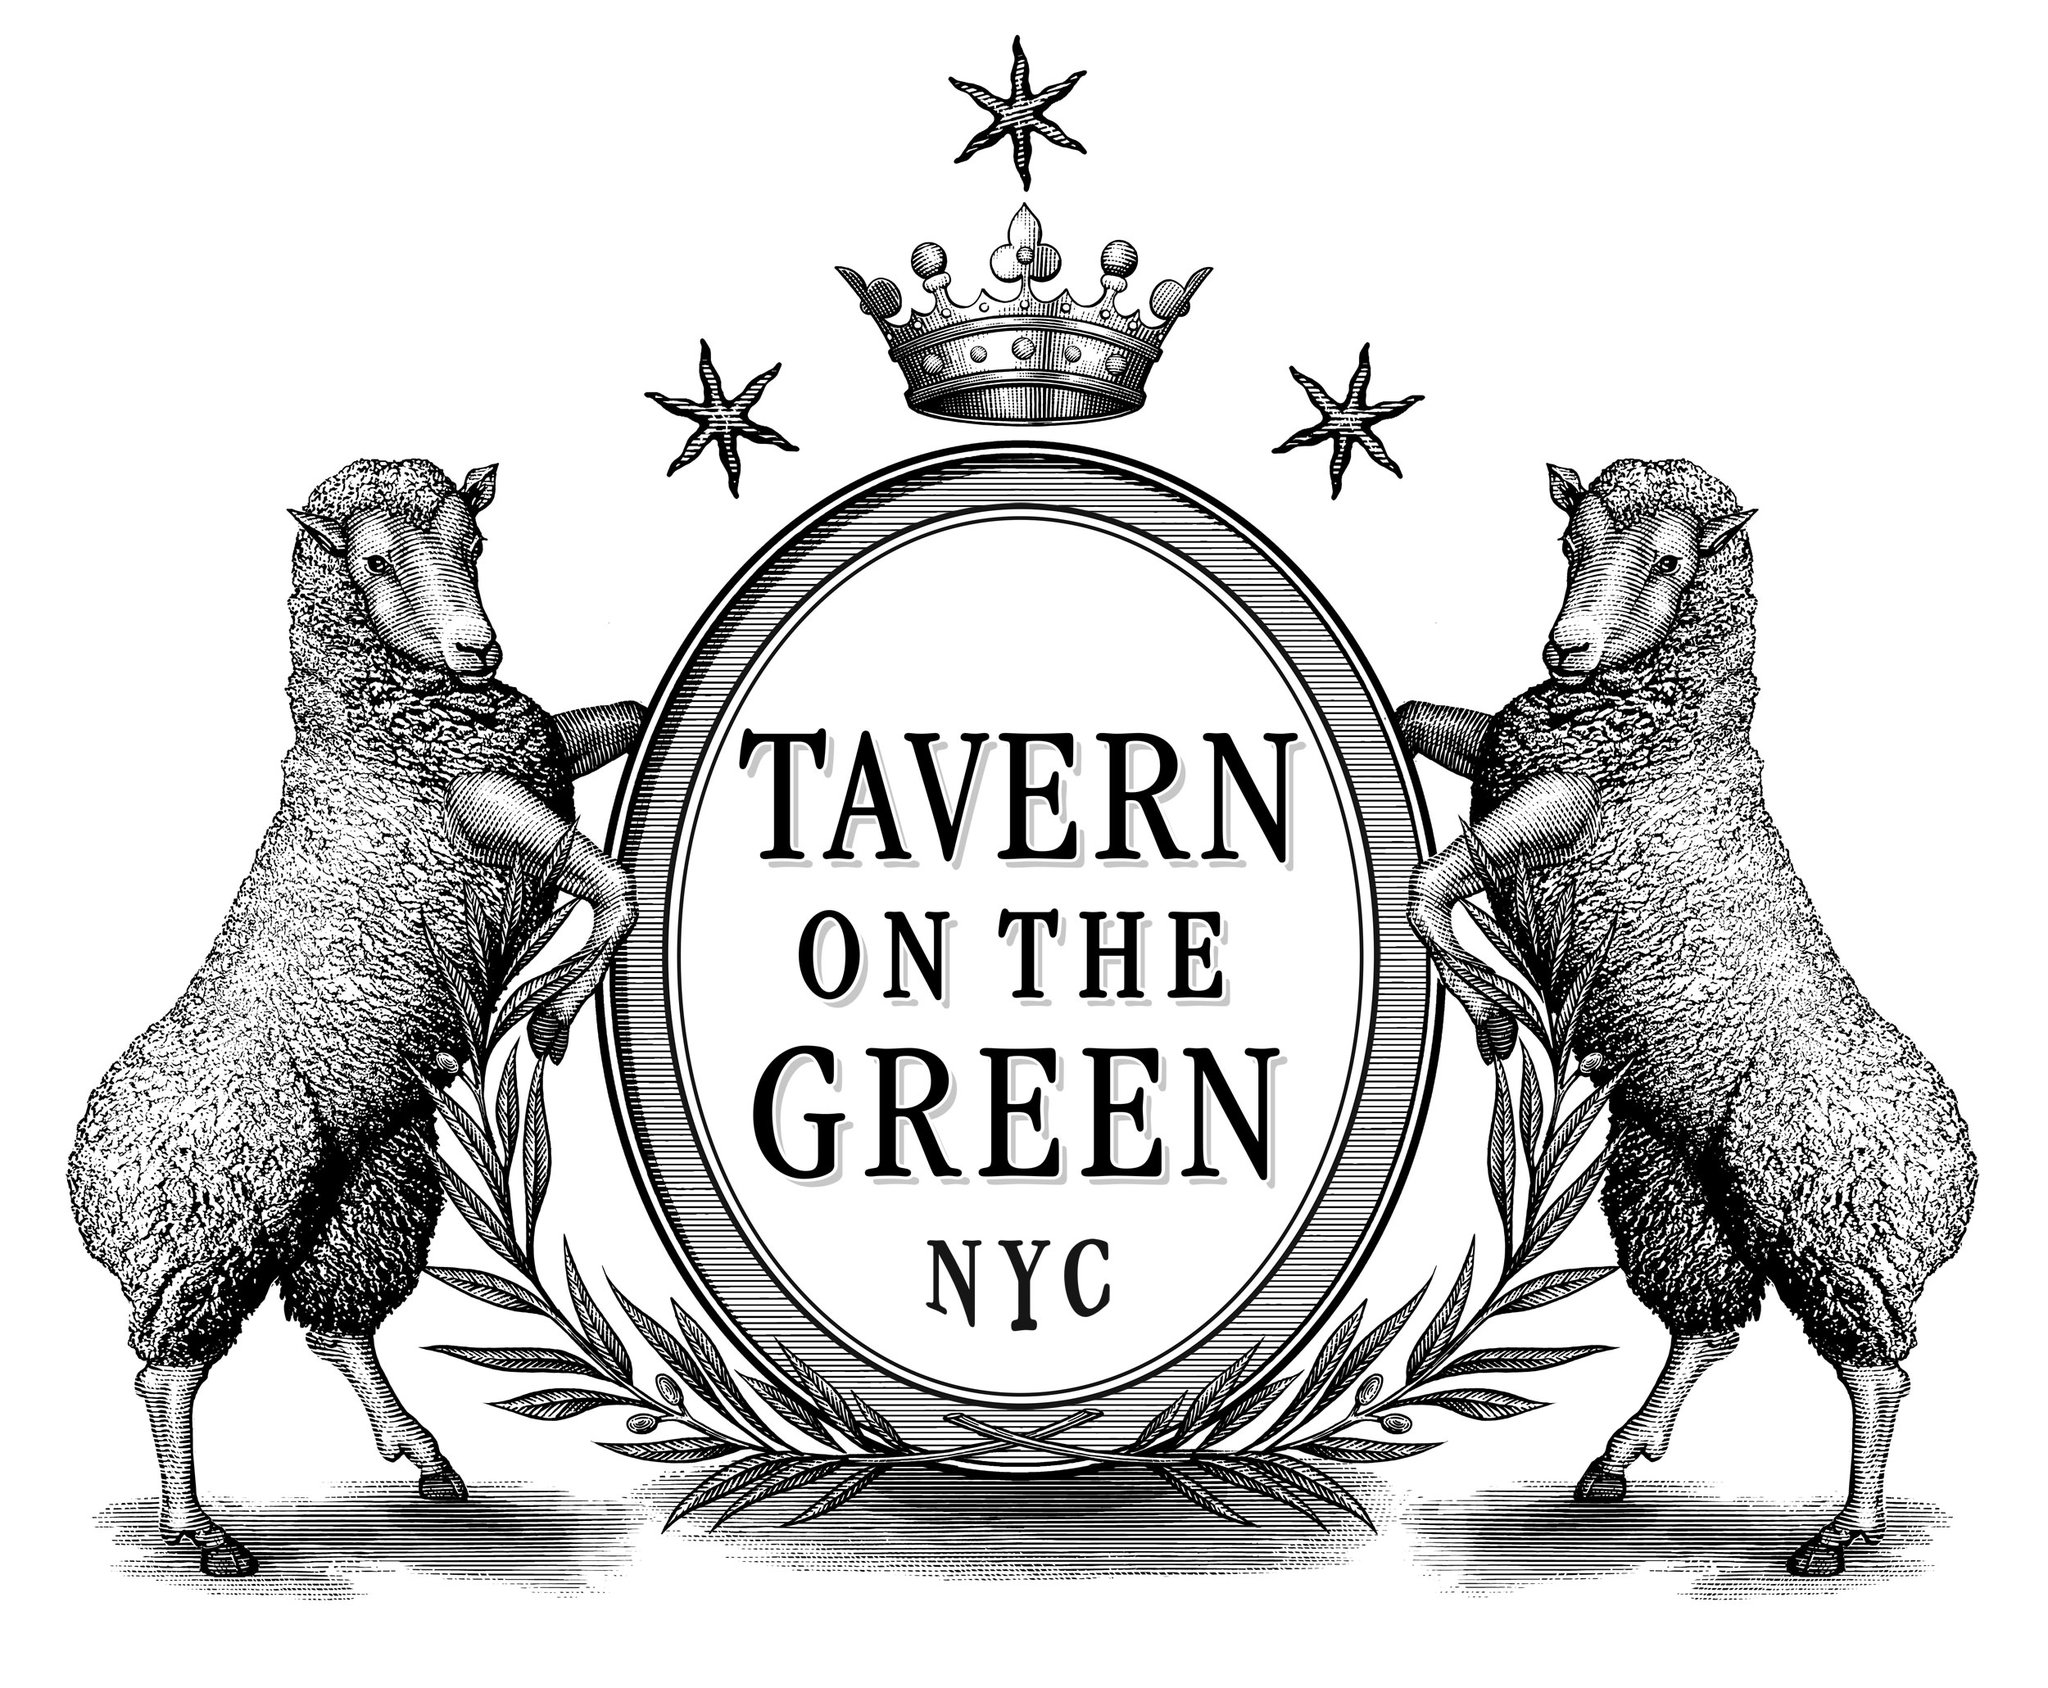 The new Tavern on the Green logo. It was a process to get here.